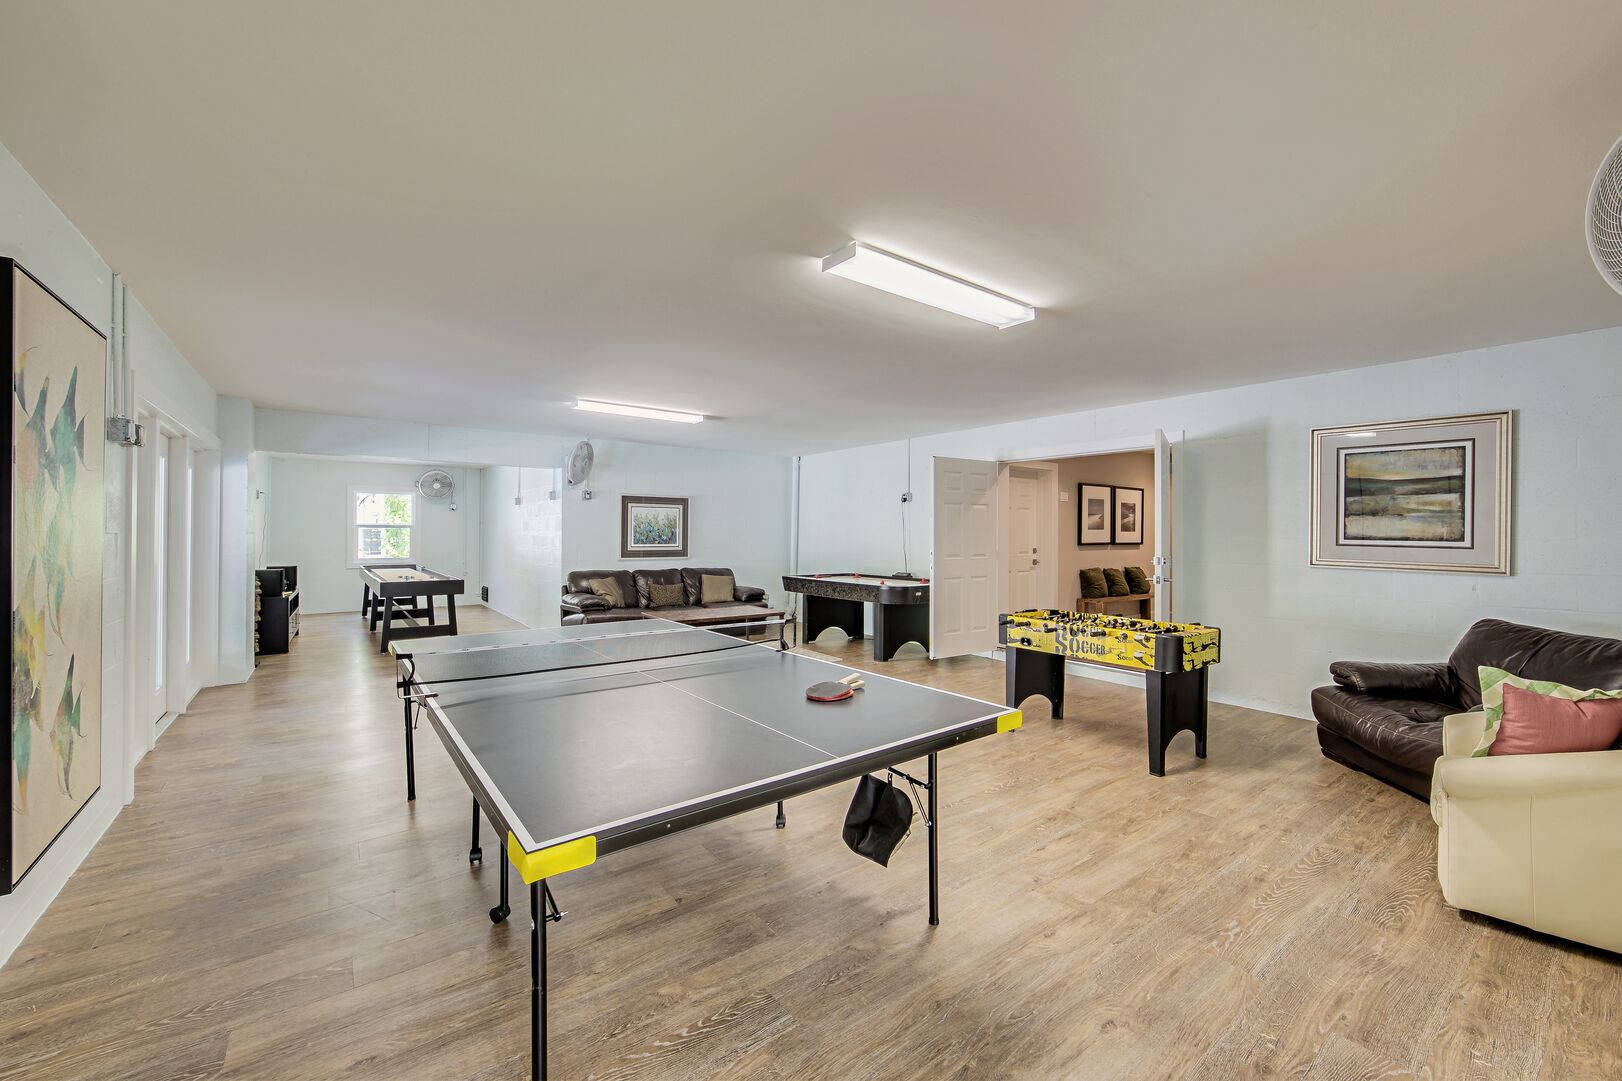 Ping pong table in unit